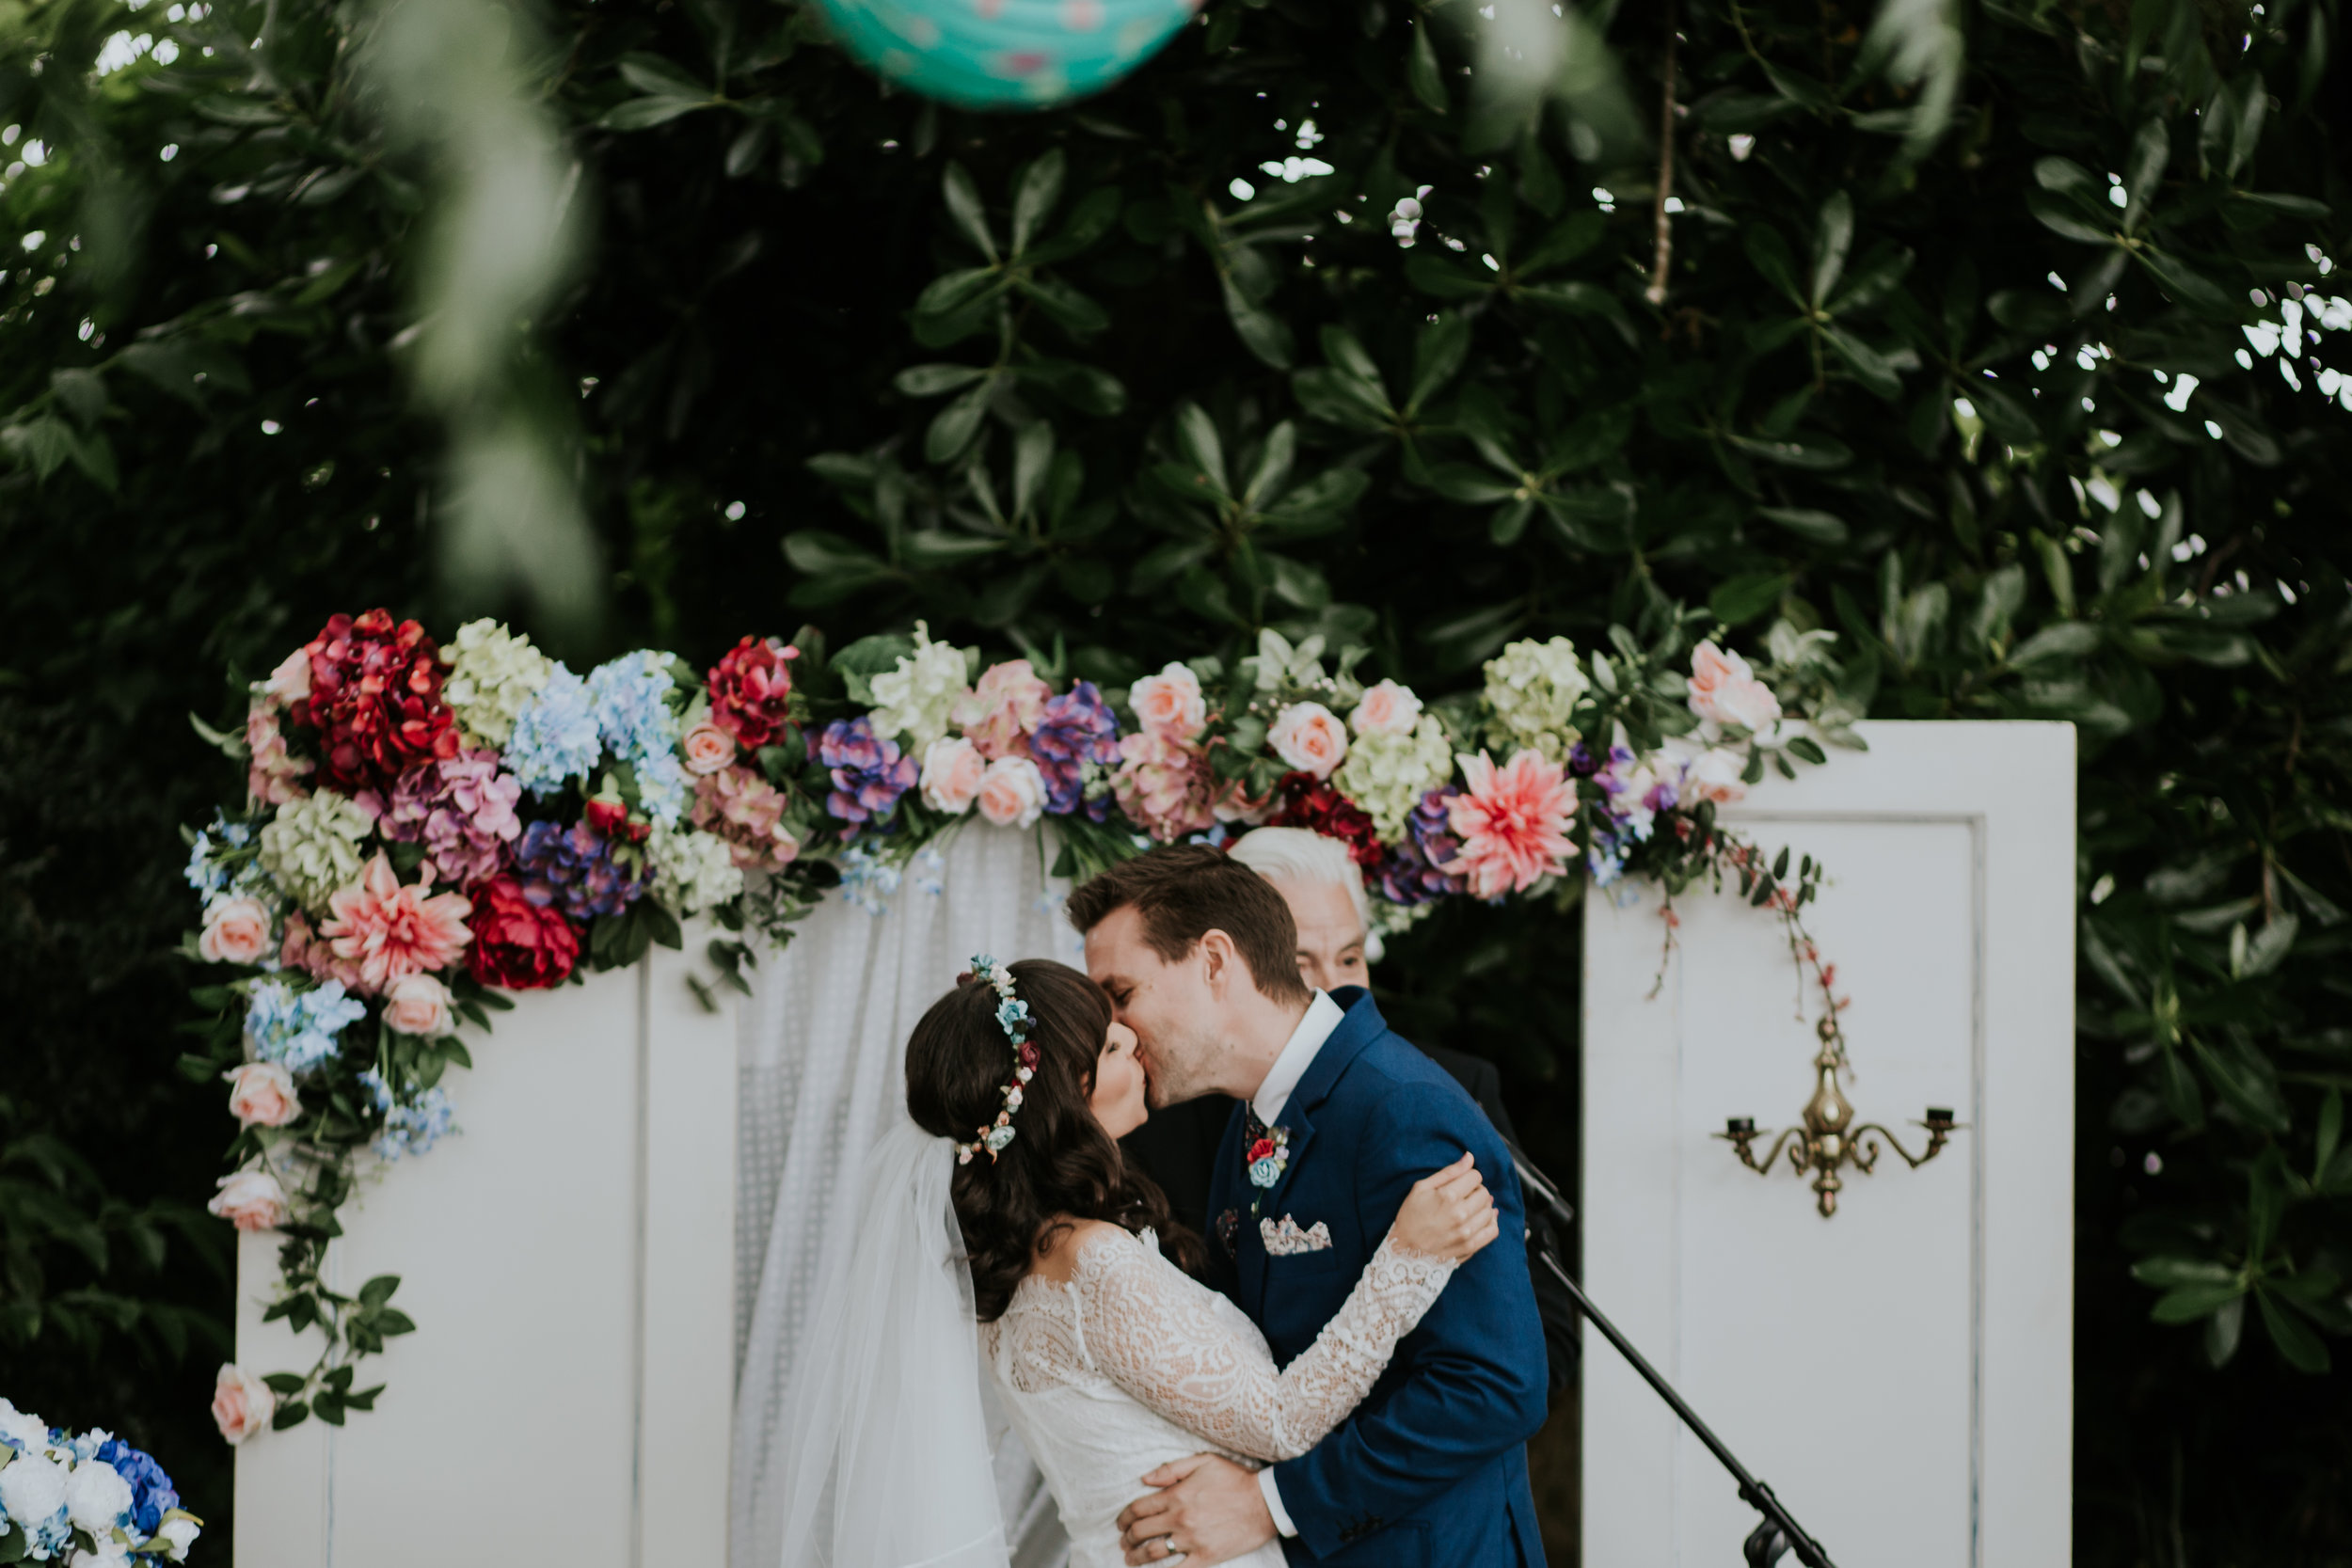 MATTHEW & ILIANA - 3RD FEBRUARY, 2018- TAURANGA, NEW ZEALAND